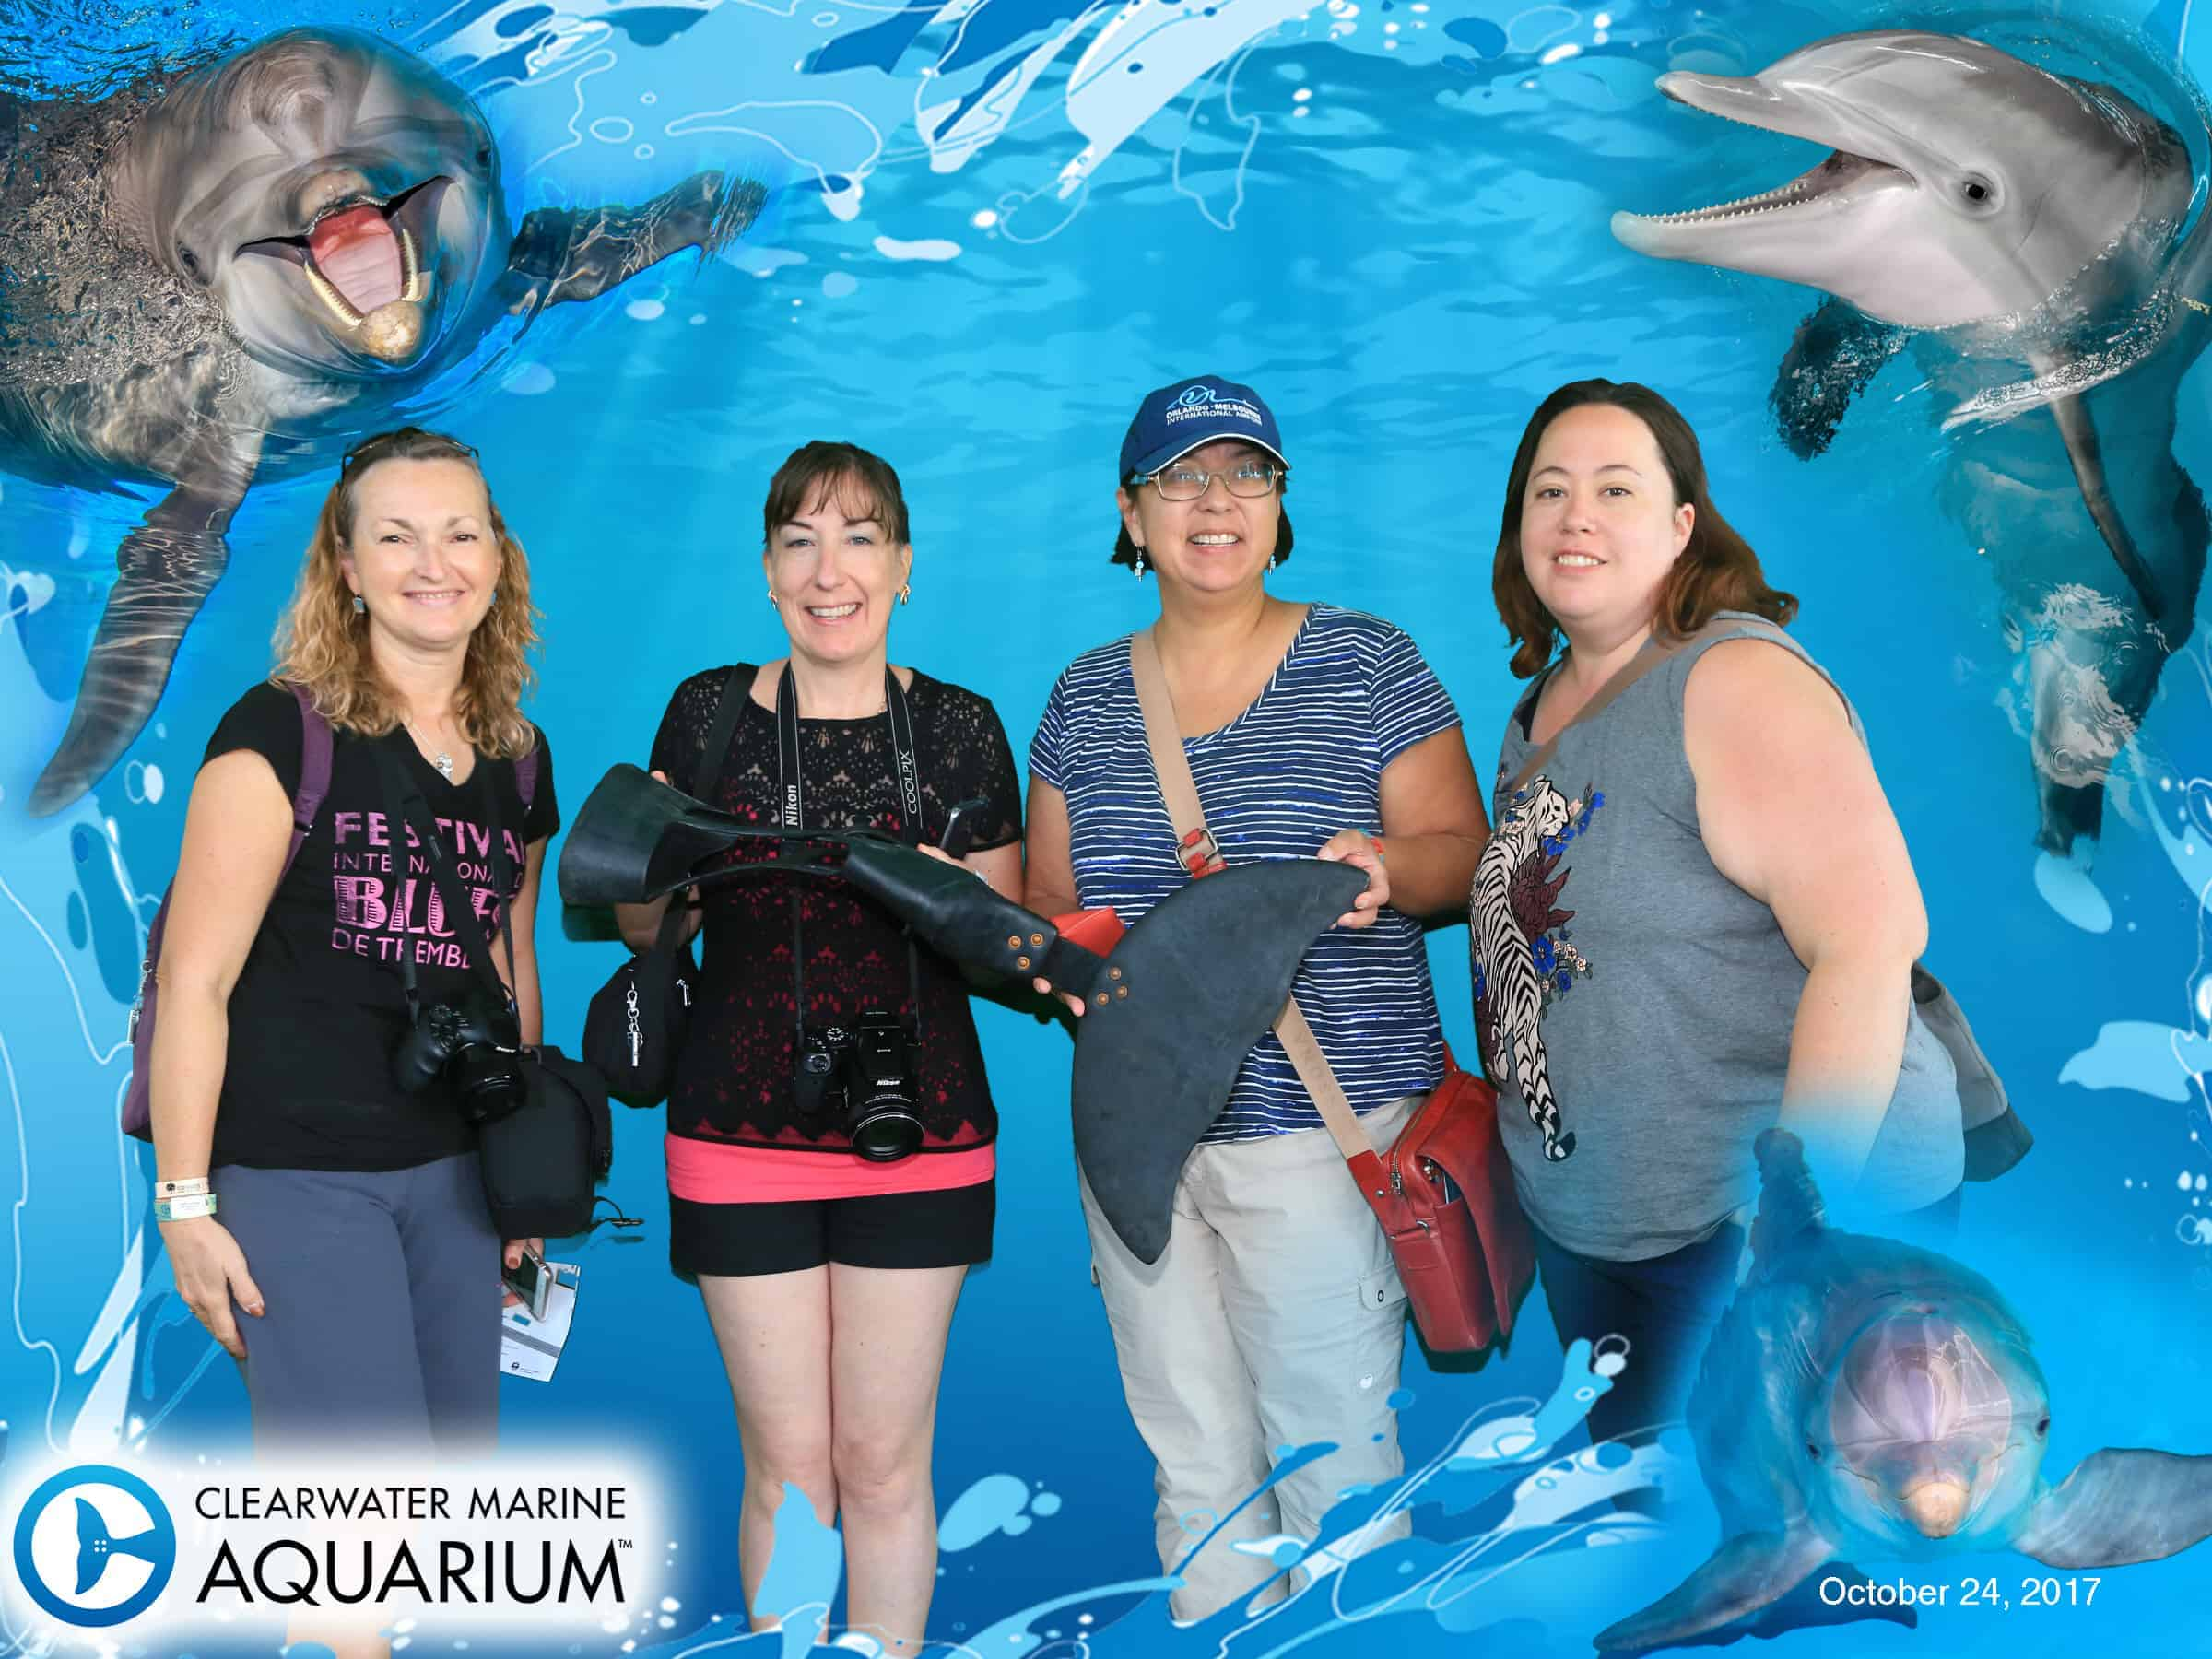 Awesome group shot at Clearwater Marine Aquarium Group Photos